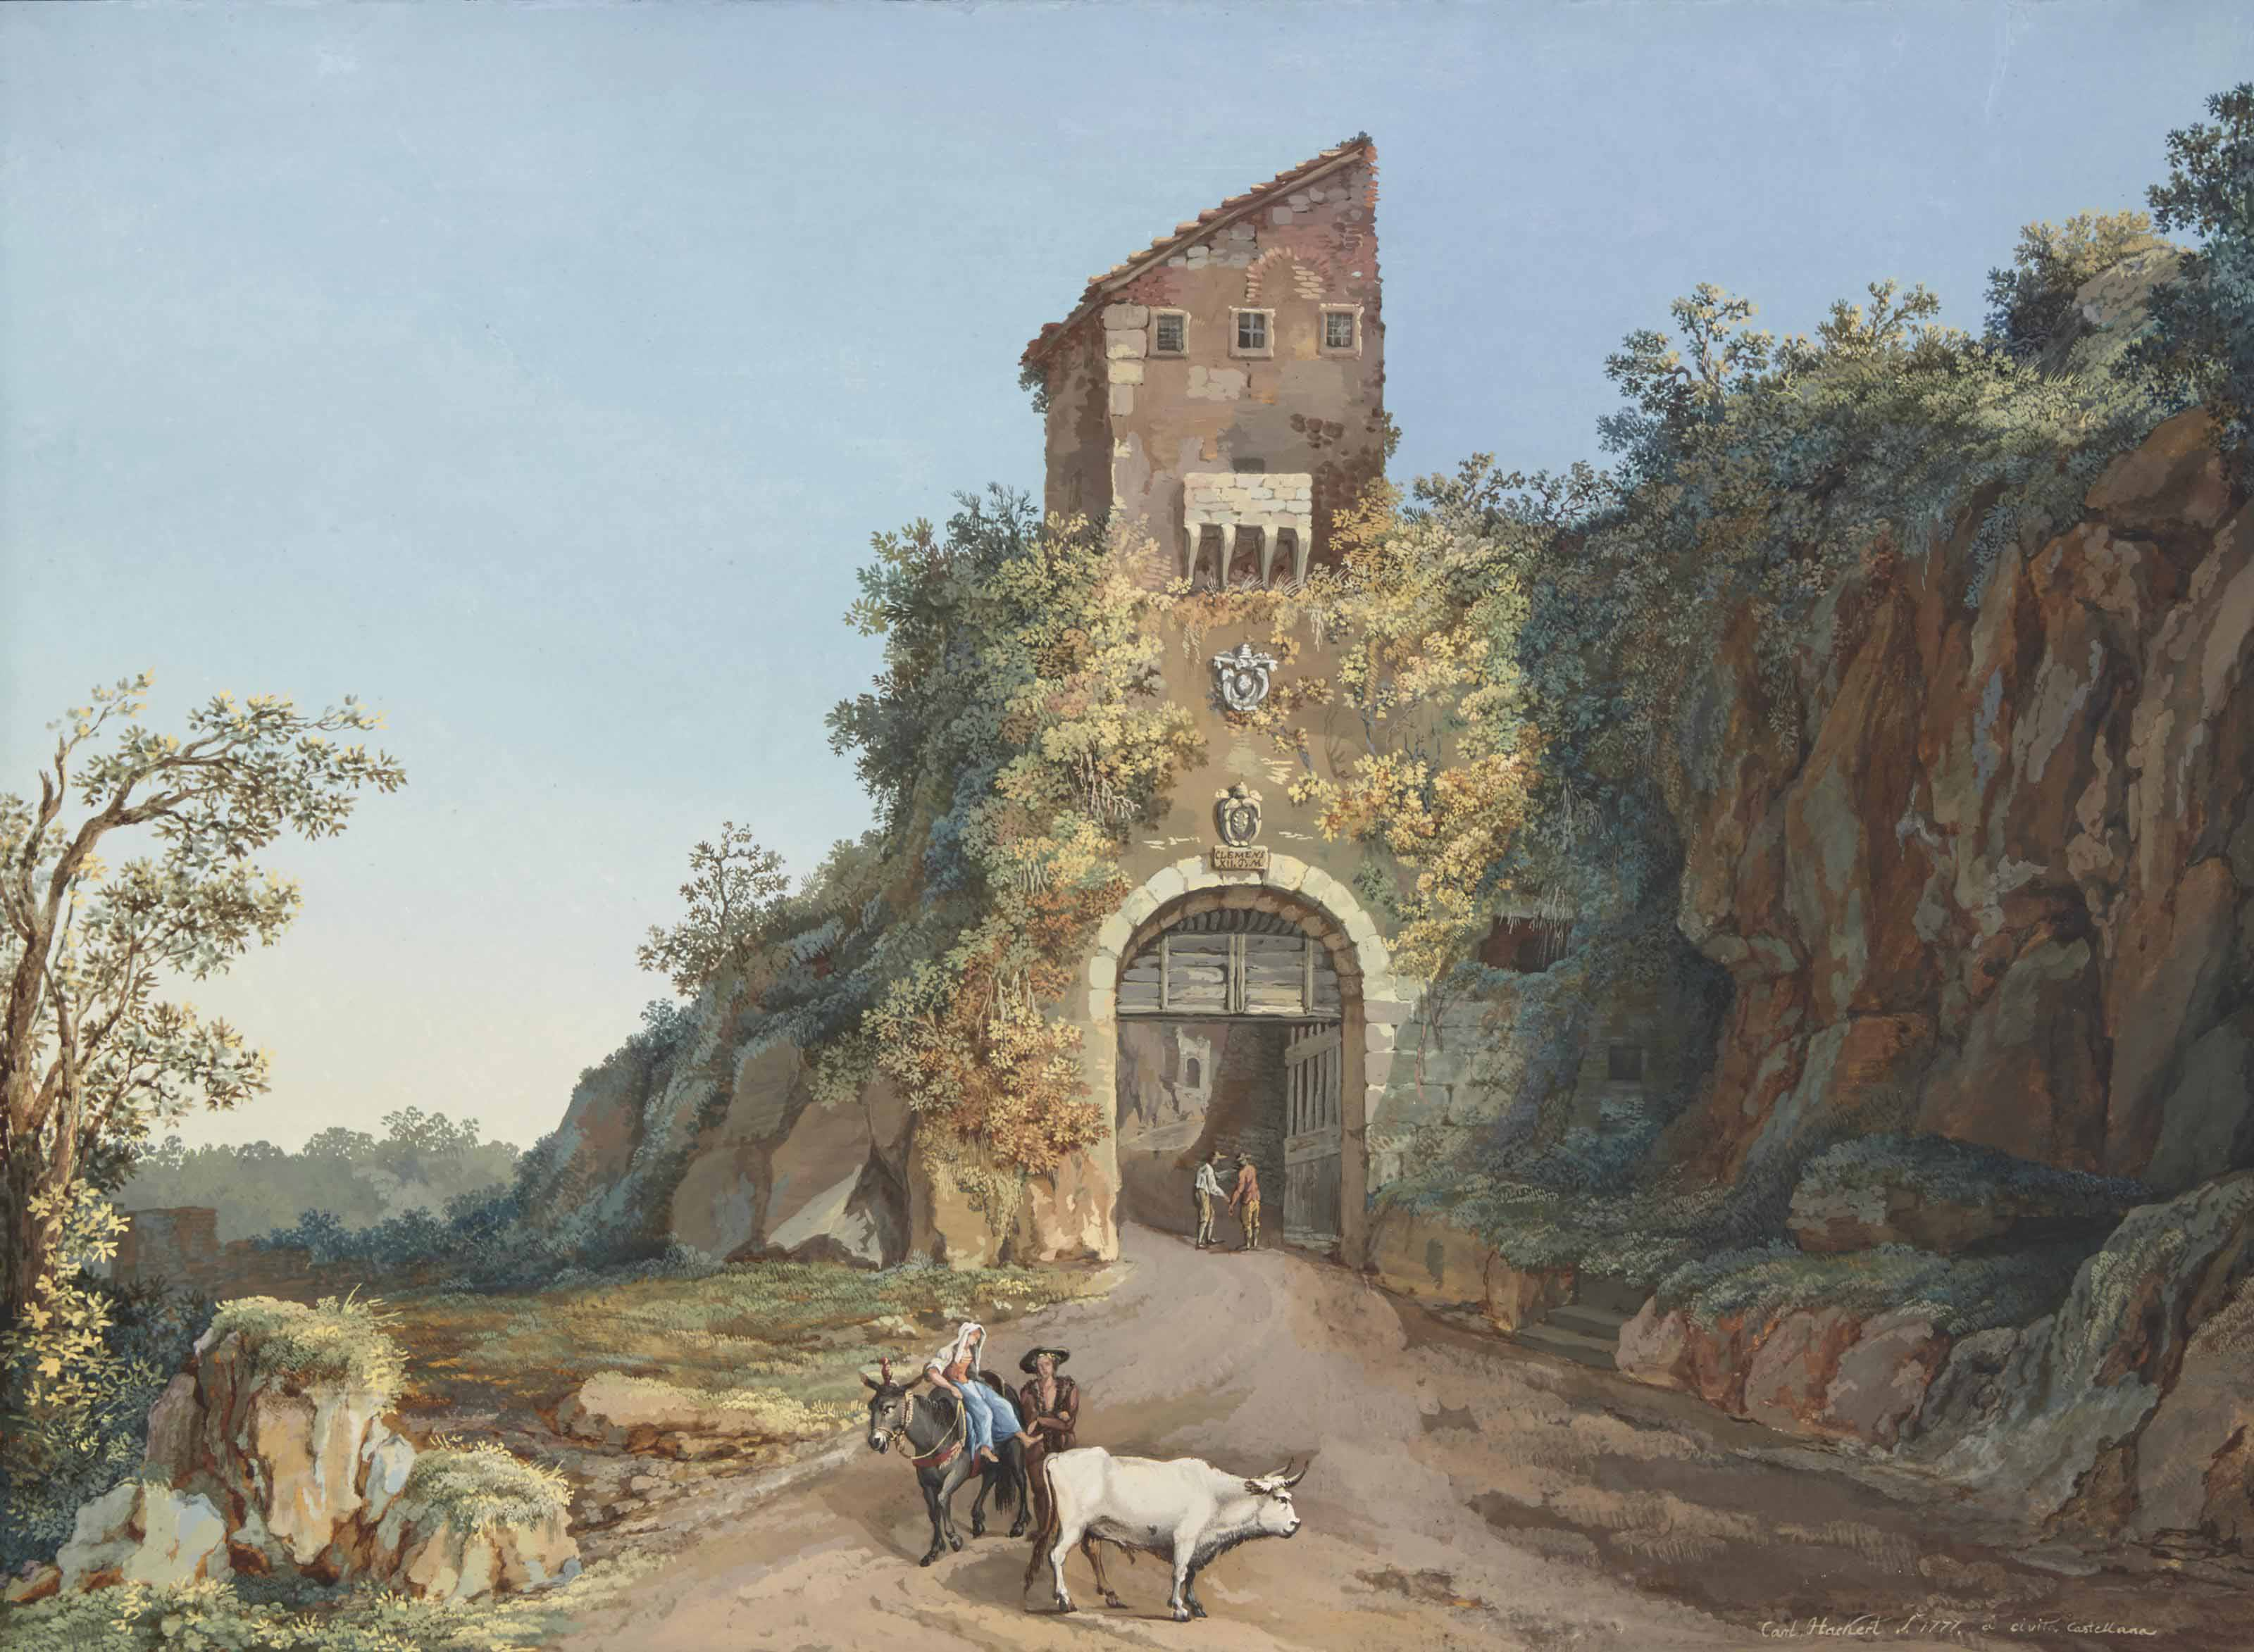 The road at Cività Castellana with a couple and animals in the foreground